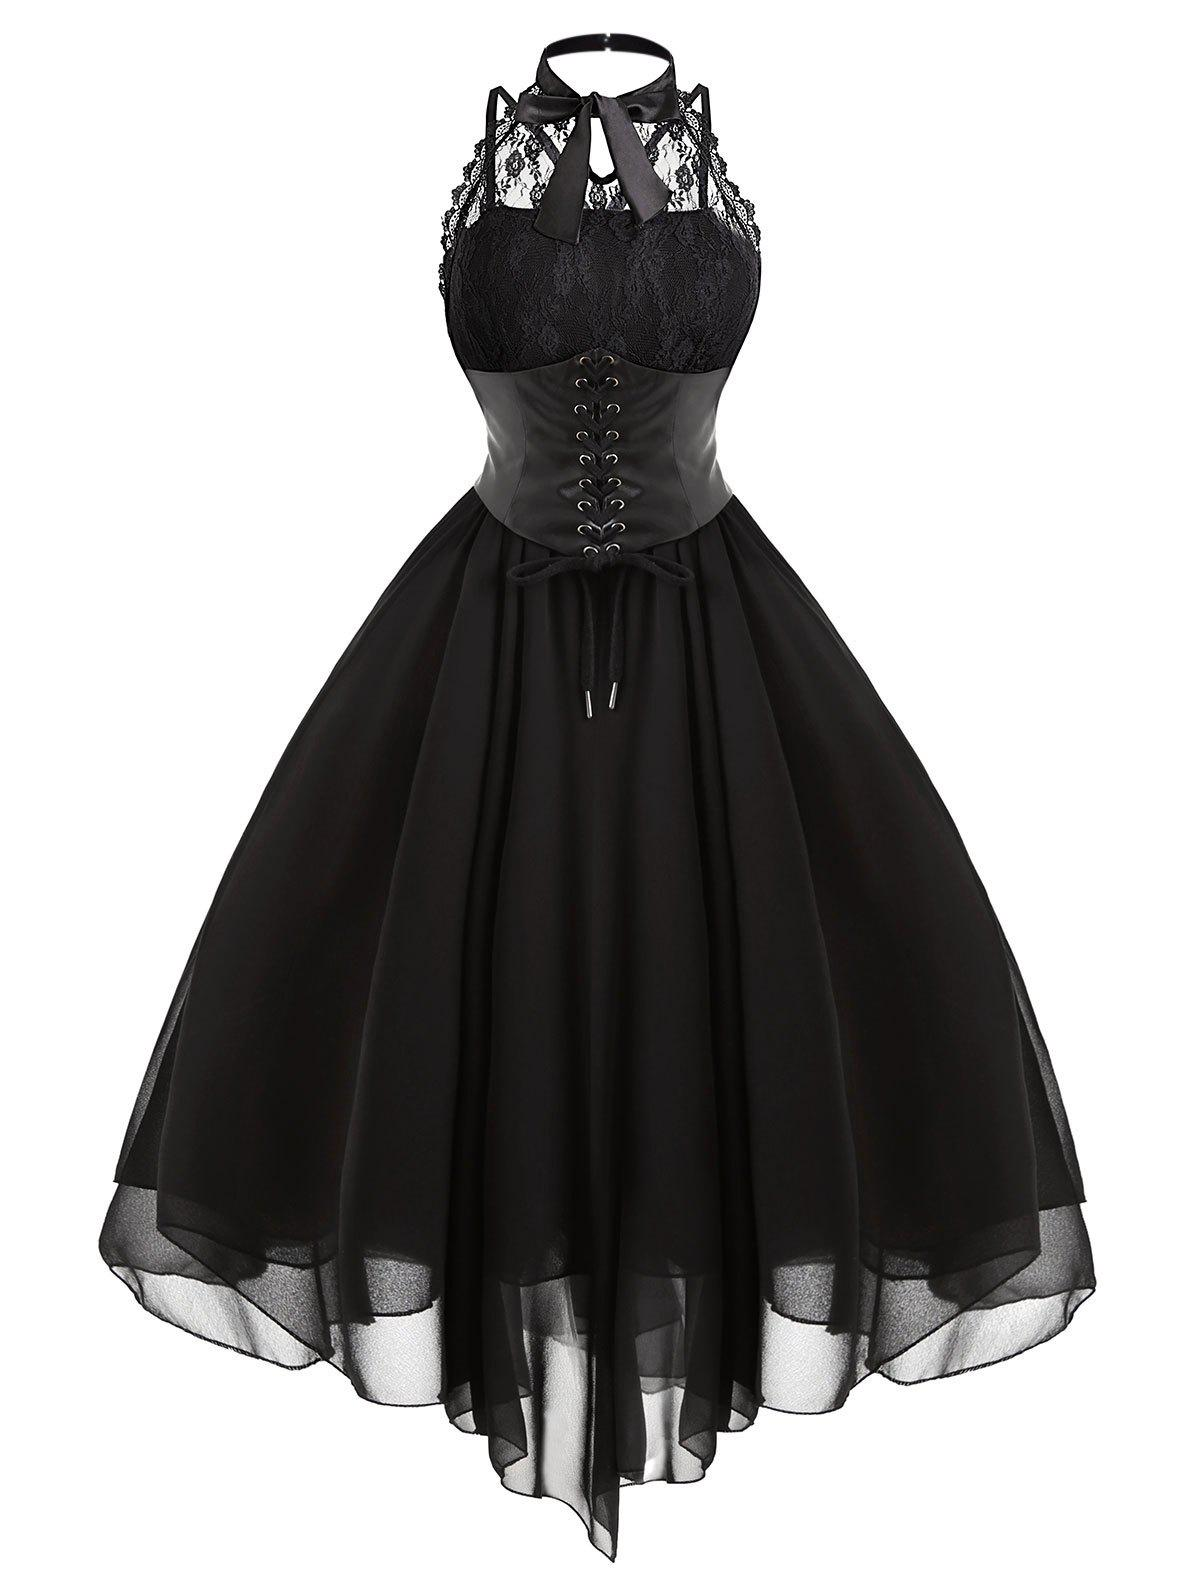 Chic Cross Back Lace Panel Gothic Corset Dress